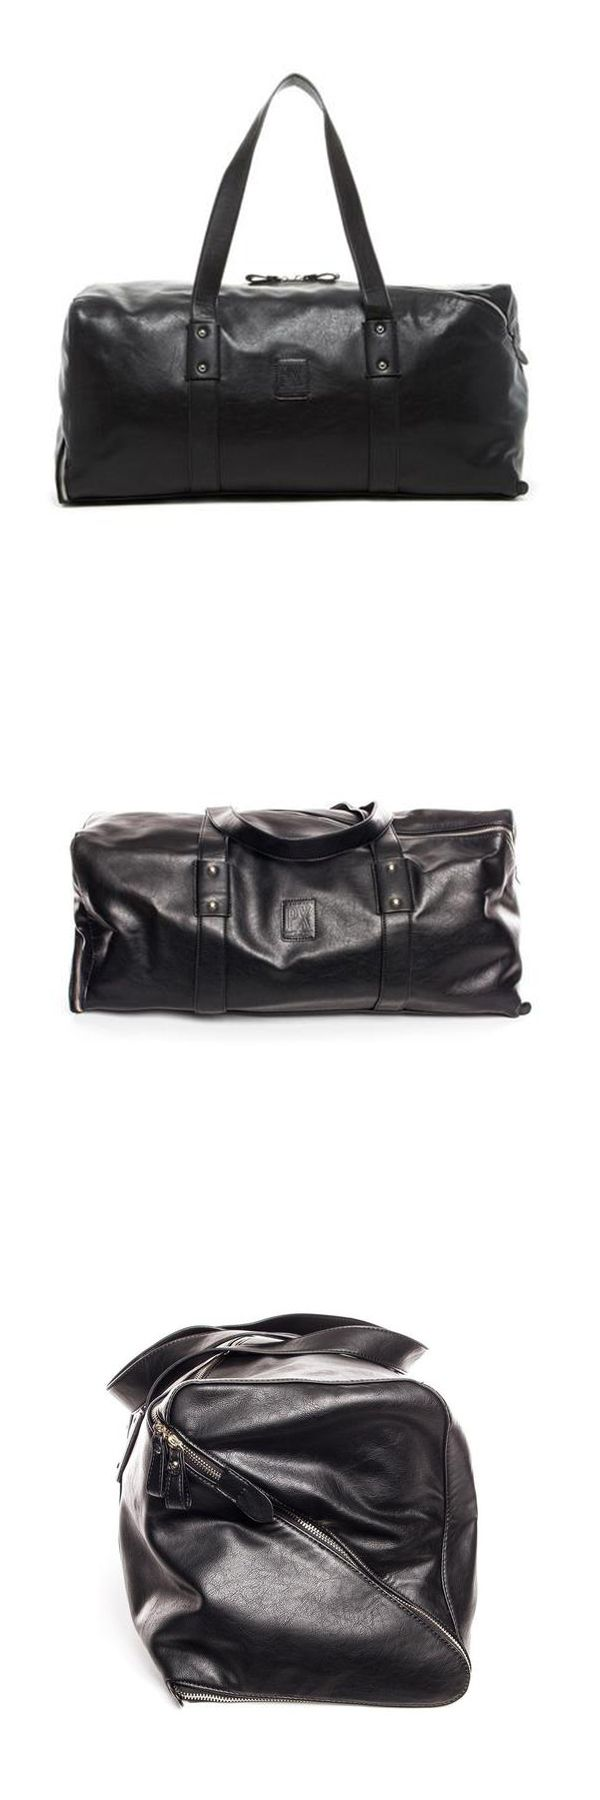 PX's Derek Vegan Leather Duffle Bag is a true game changer! Get rid of your old raggedy bag and upgrade your travel game! Made of vegan leather, it has a unique diagonal zipper for extra style! Use this duffle bag to carry your sports gear, or as carry-on luggage on your next vacation.